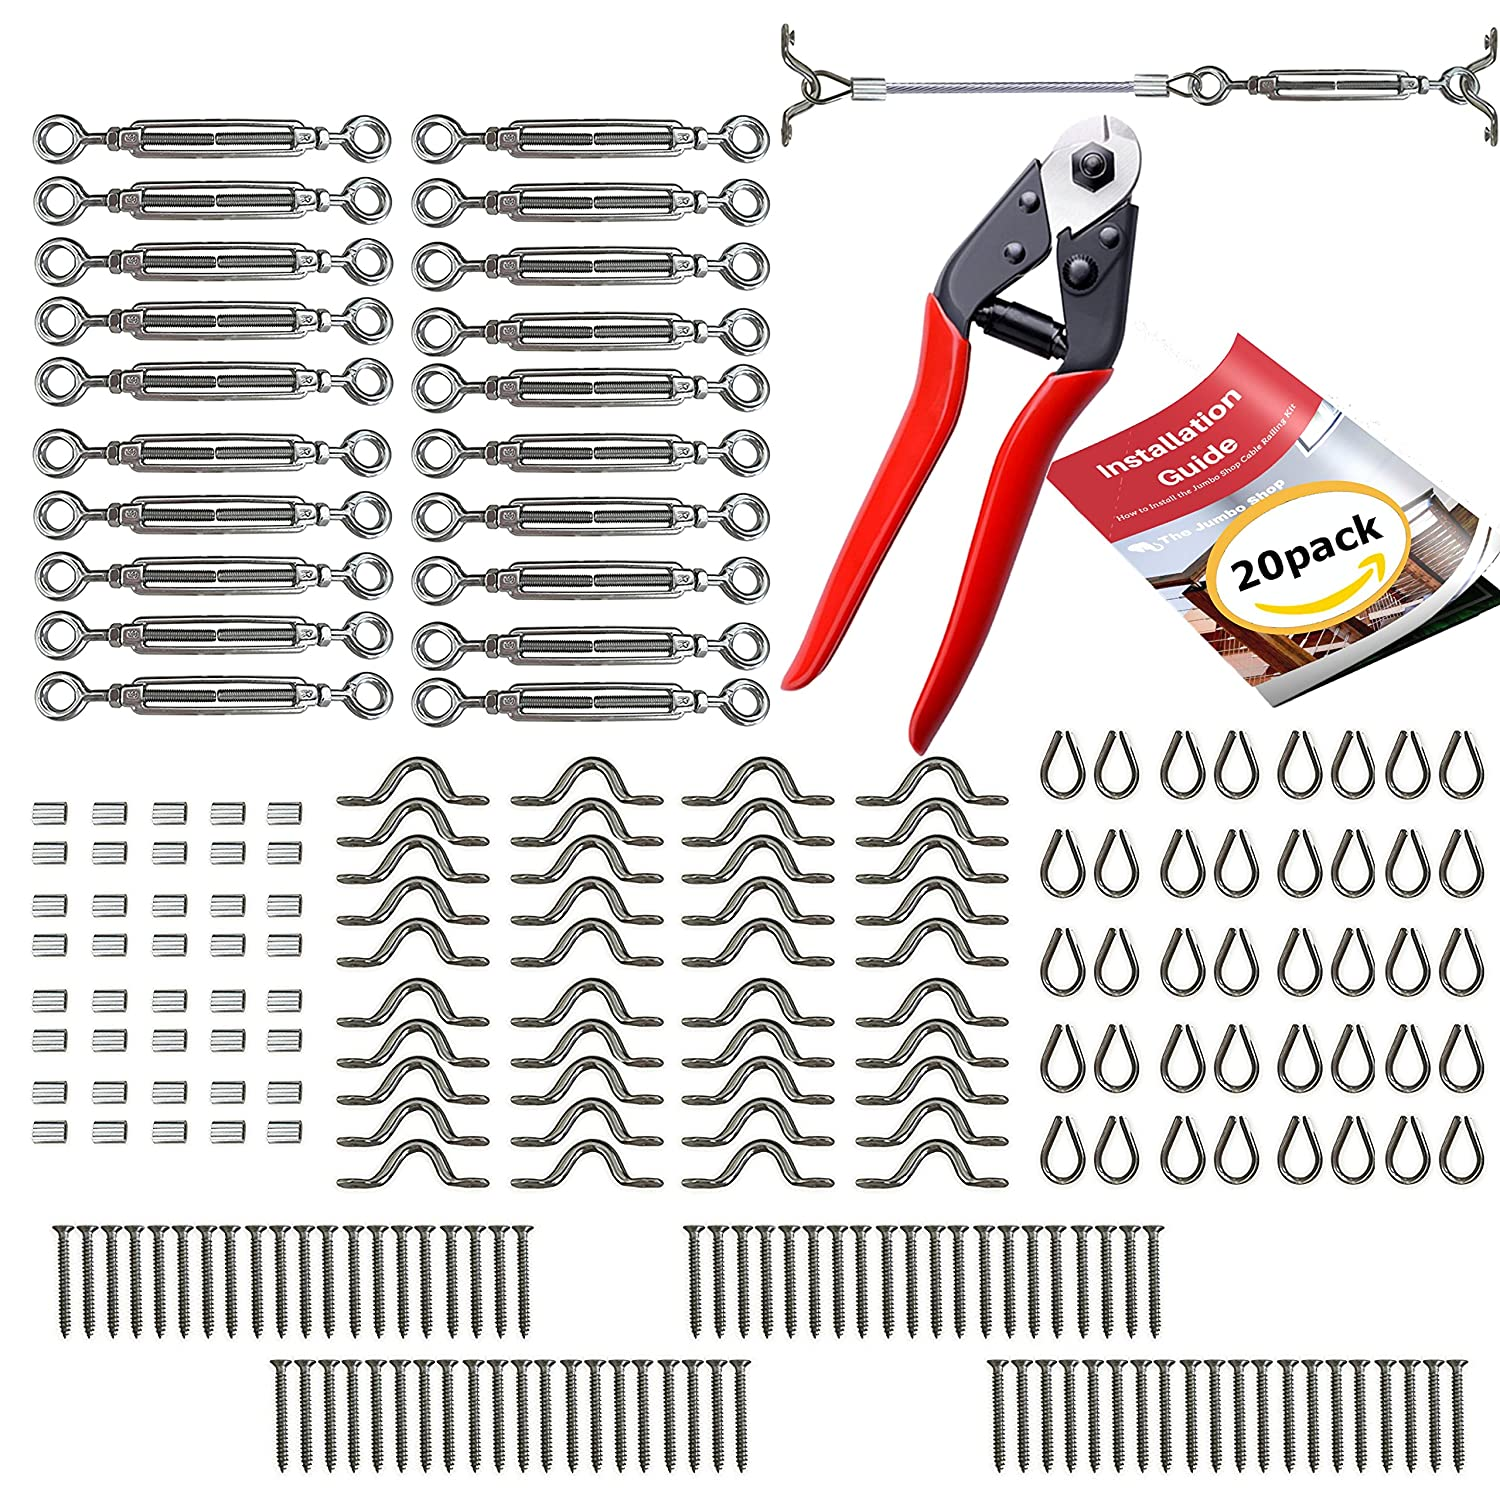 Cable Railing Kit - 20 Pack + CABLE CUTTER - Heavy Duty Stainless ...